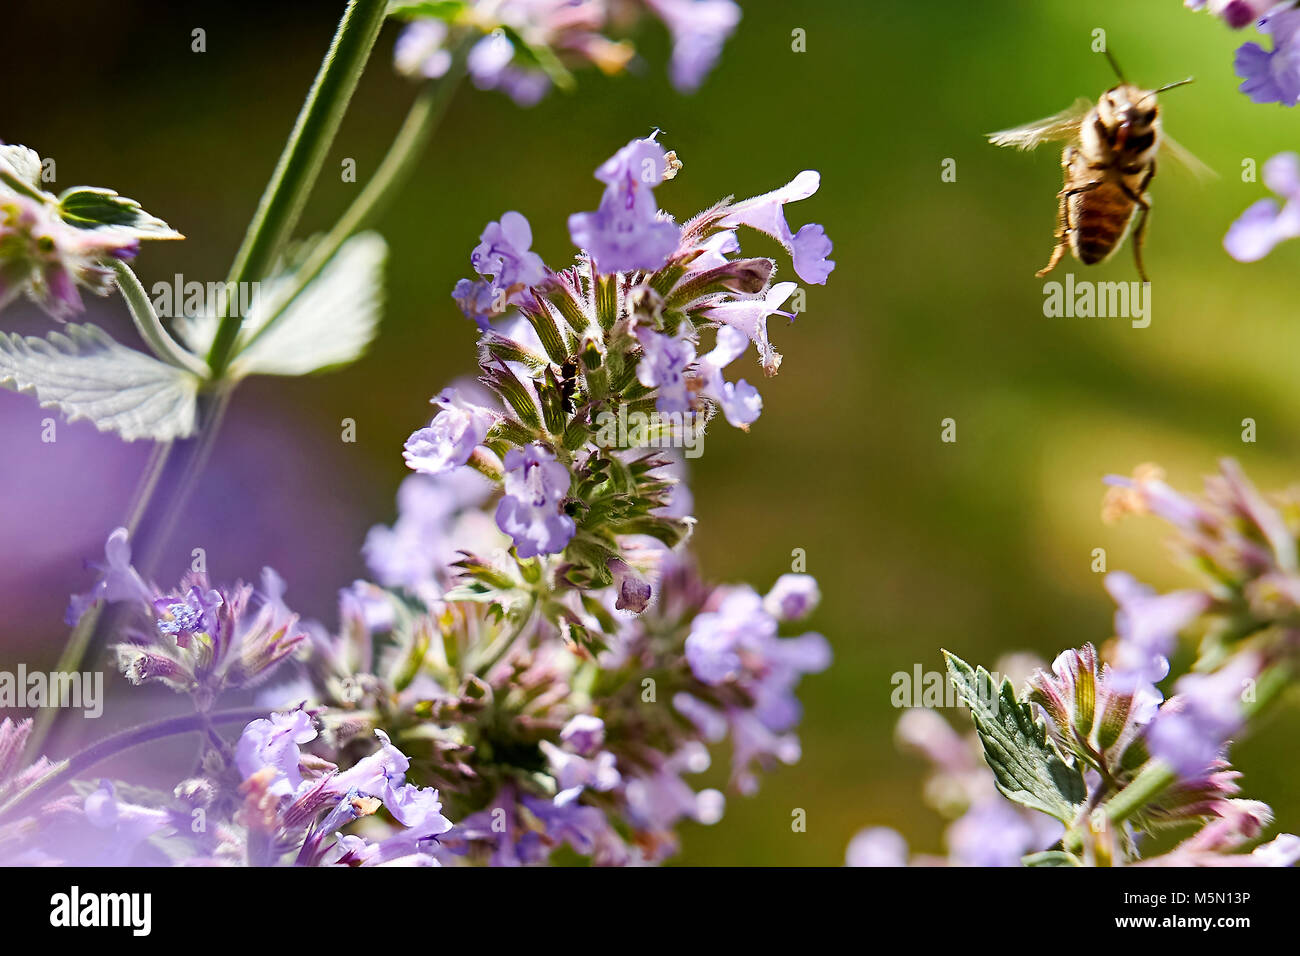 Summer meadow - bee collecting floral nectar, large close-up (macro) - Stock Image